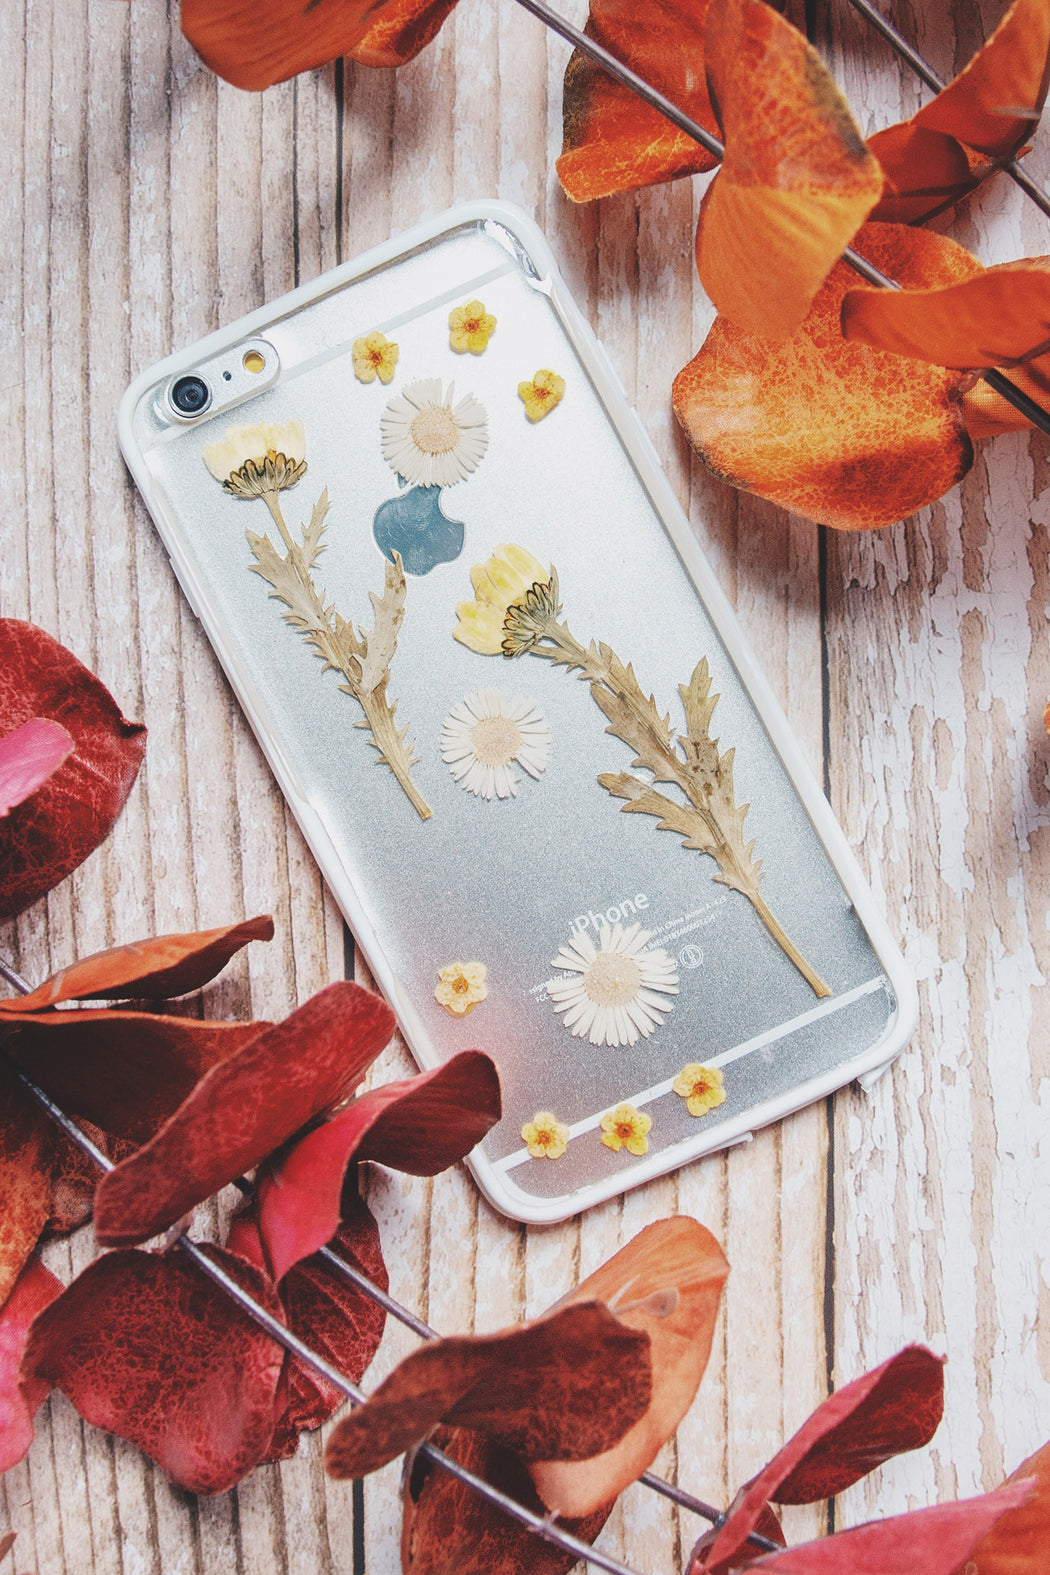 Pressed_Flower_Floral_Protective_Cute_Anti_Drop_iPhone_6Plus_6sPlus_bumer_case_Sparkles_floral_neverland_floralfy